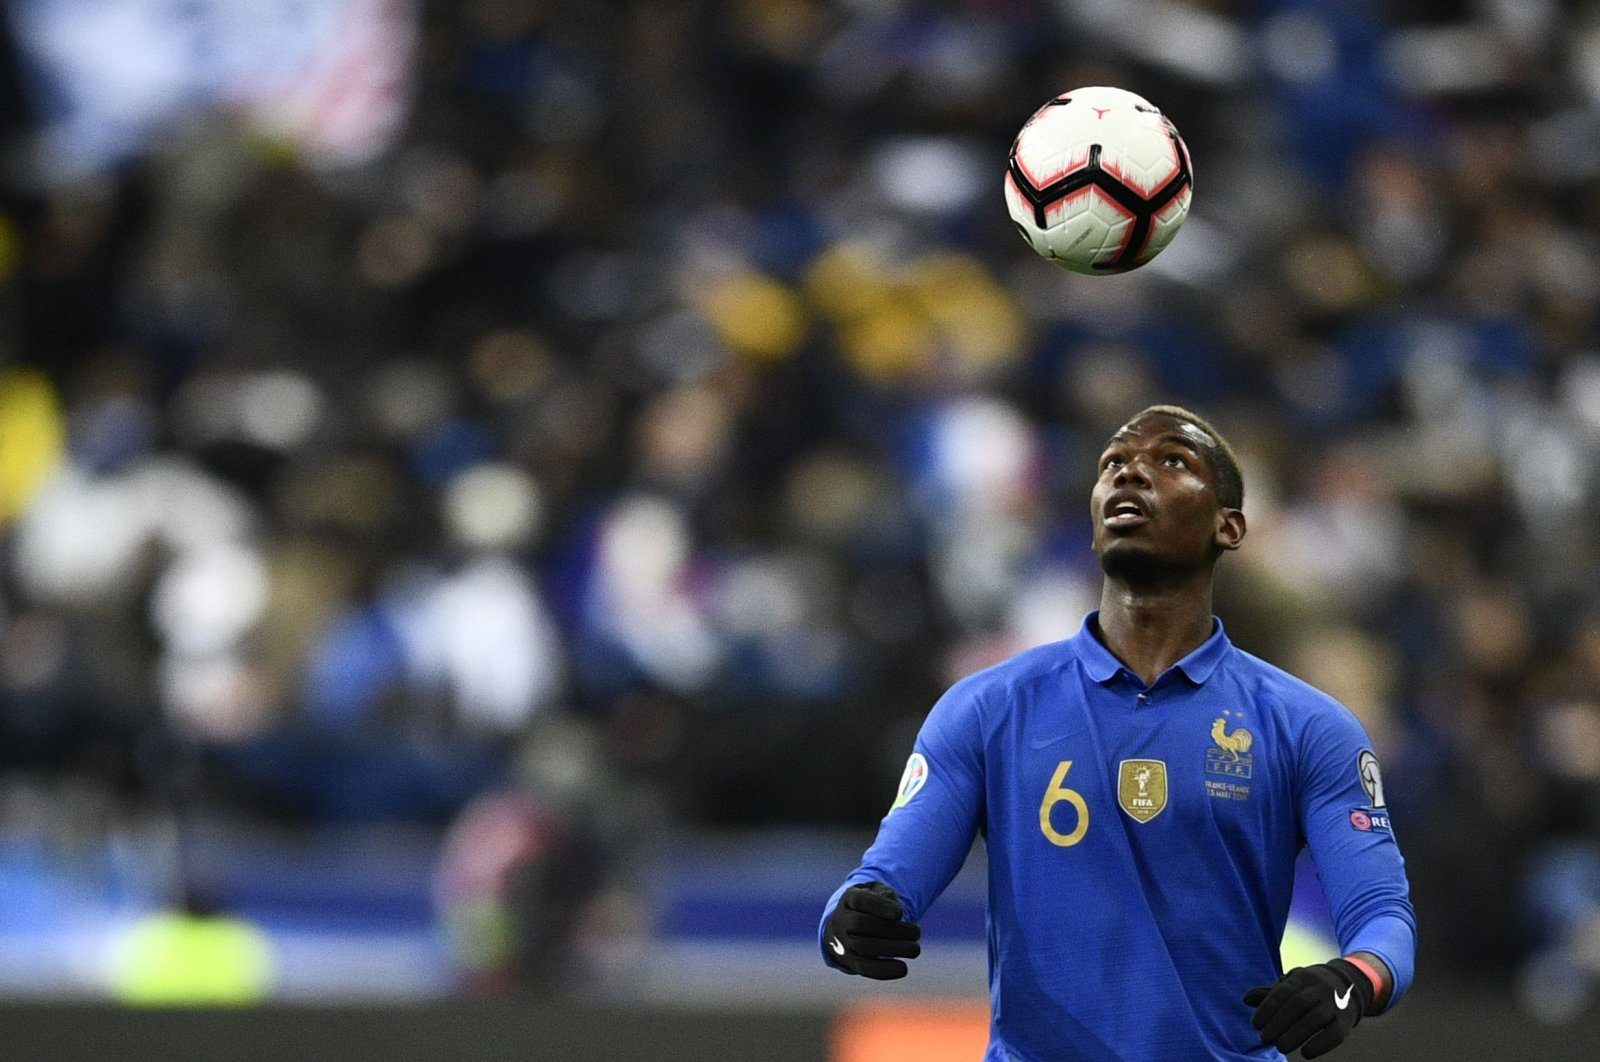 France's Paul Pogba heading a ball during a Euro 2020 match against Iceland, in Paris, France, March 25, 2019. (AFP Photo)